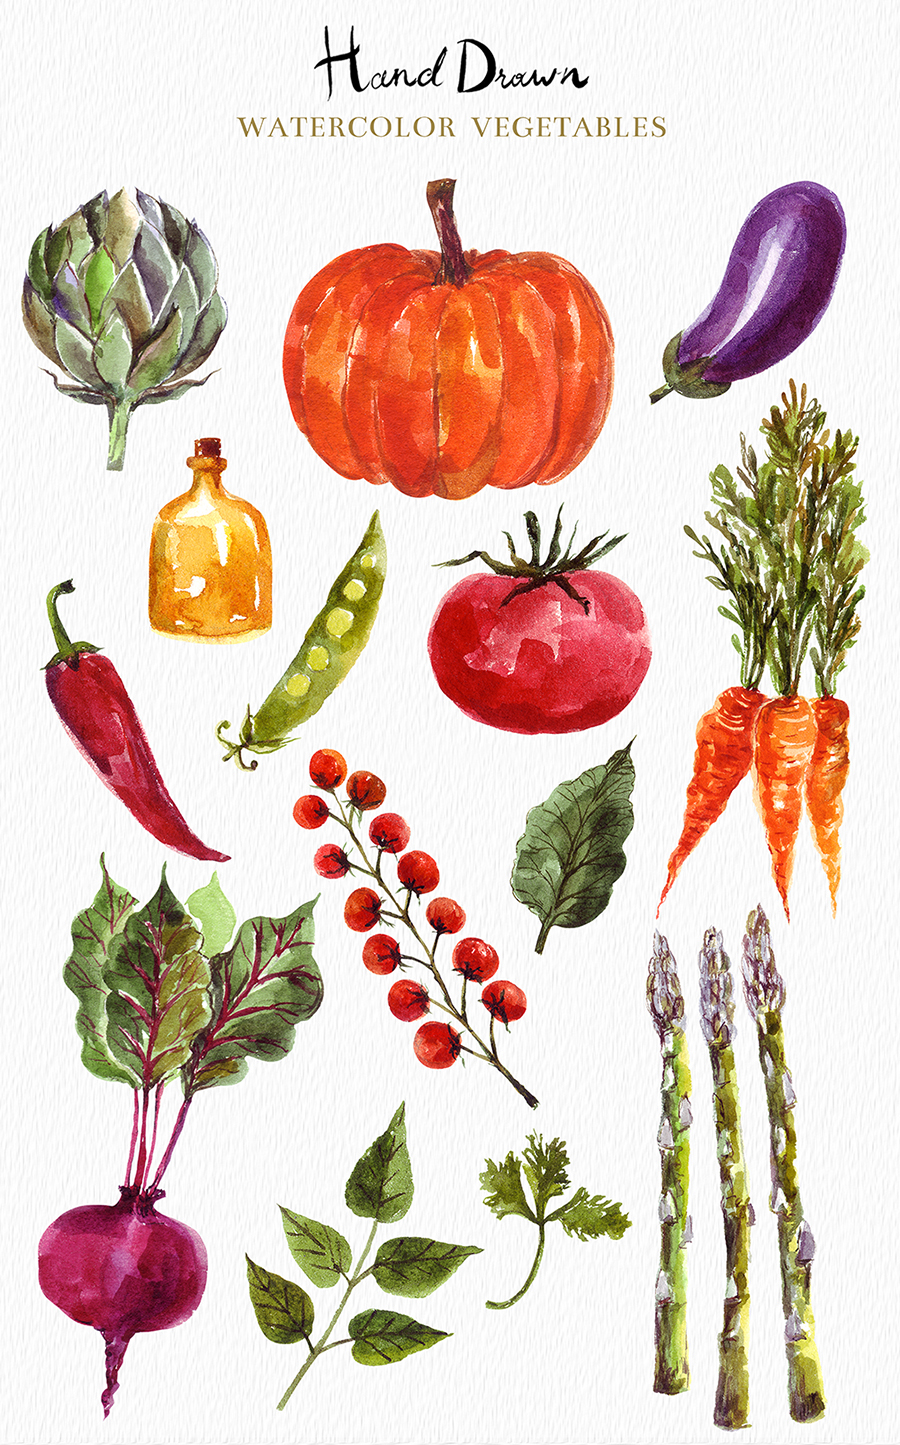 Watercolor vegetables & fruits example image 2